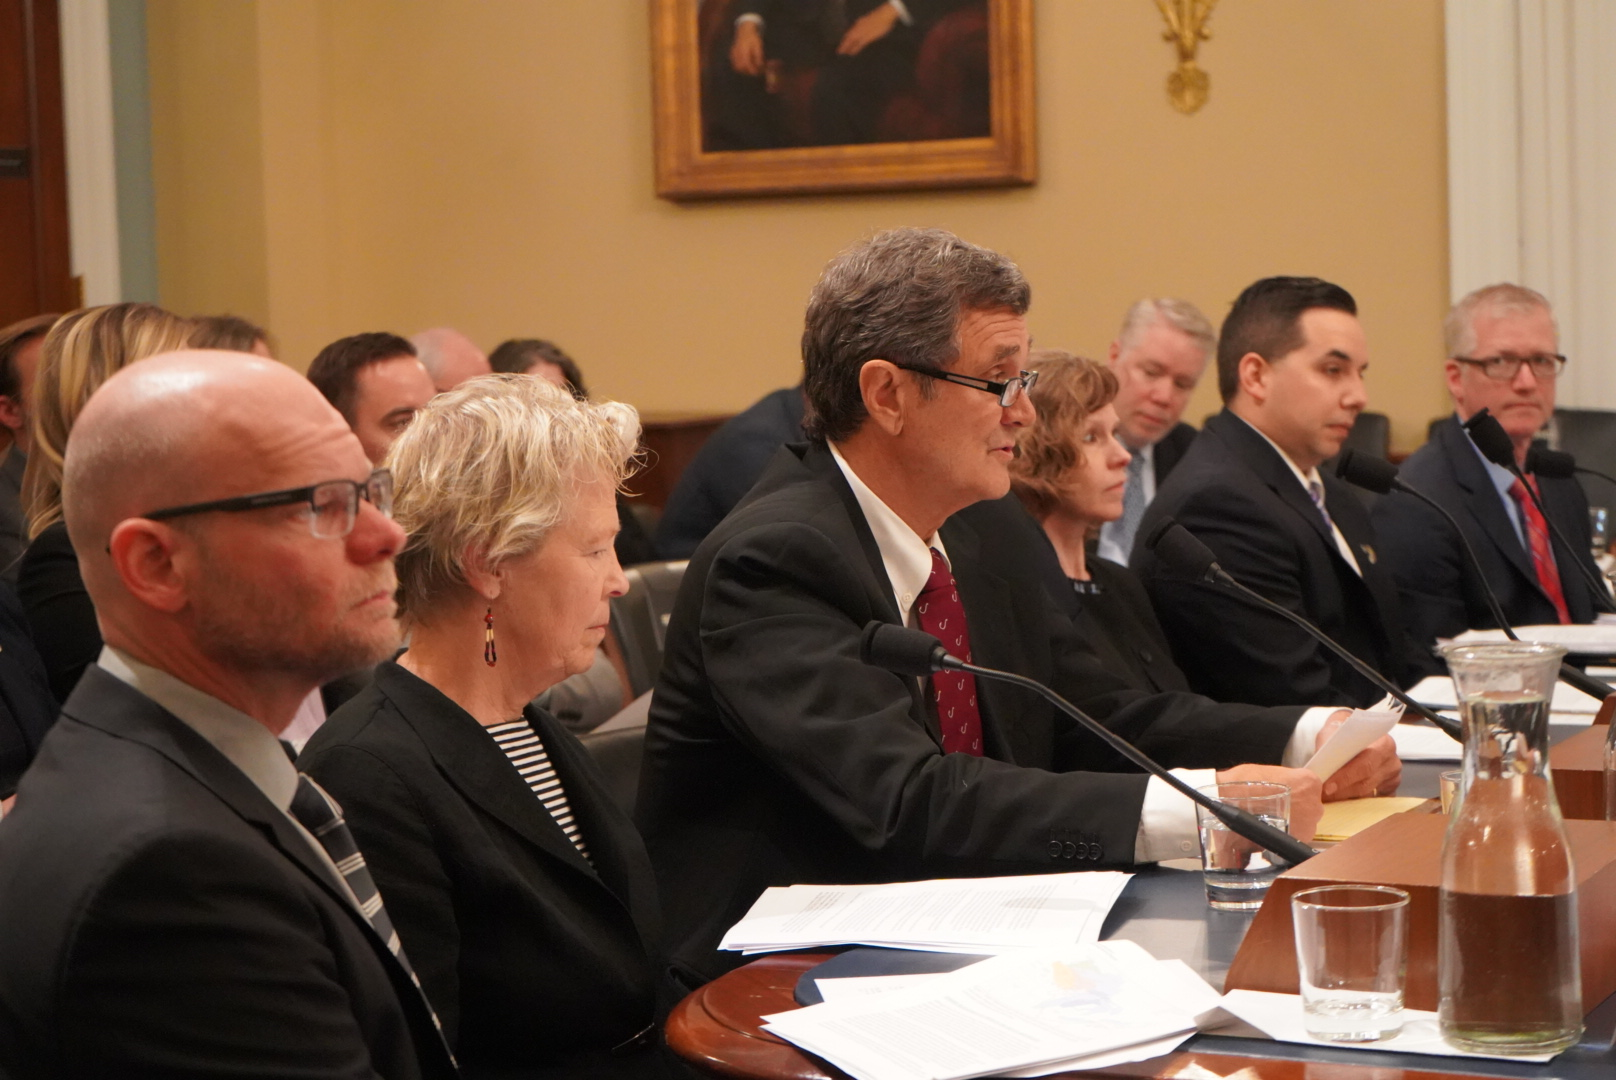 Bill Shedd, president of the American Fishing Tackle Company (AFTCO) and a 25-year Chairman of the American Sportfishing Association's (ASA) Government Affairs committee, testifies before Congress about the devastating impact that drift gillnets have on sportfish populations.